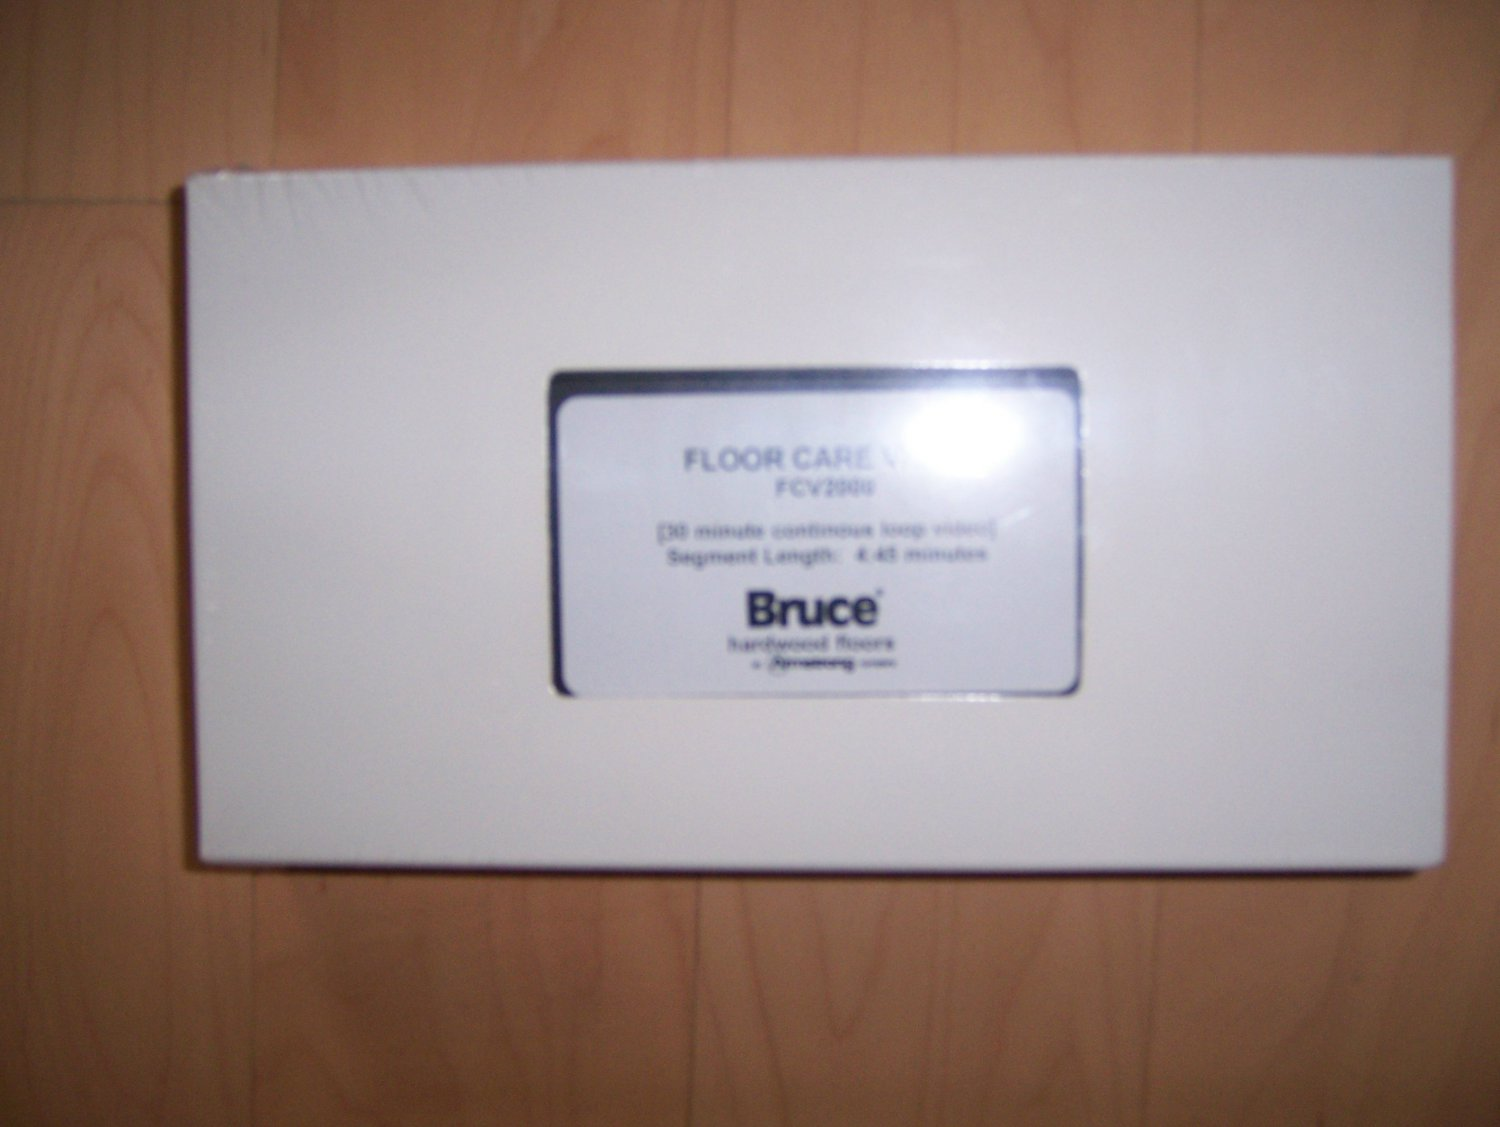 VHS Bruce Floor Care by Armstrong BNK822